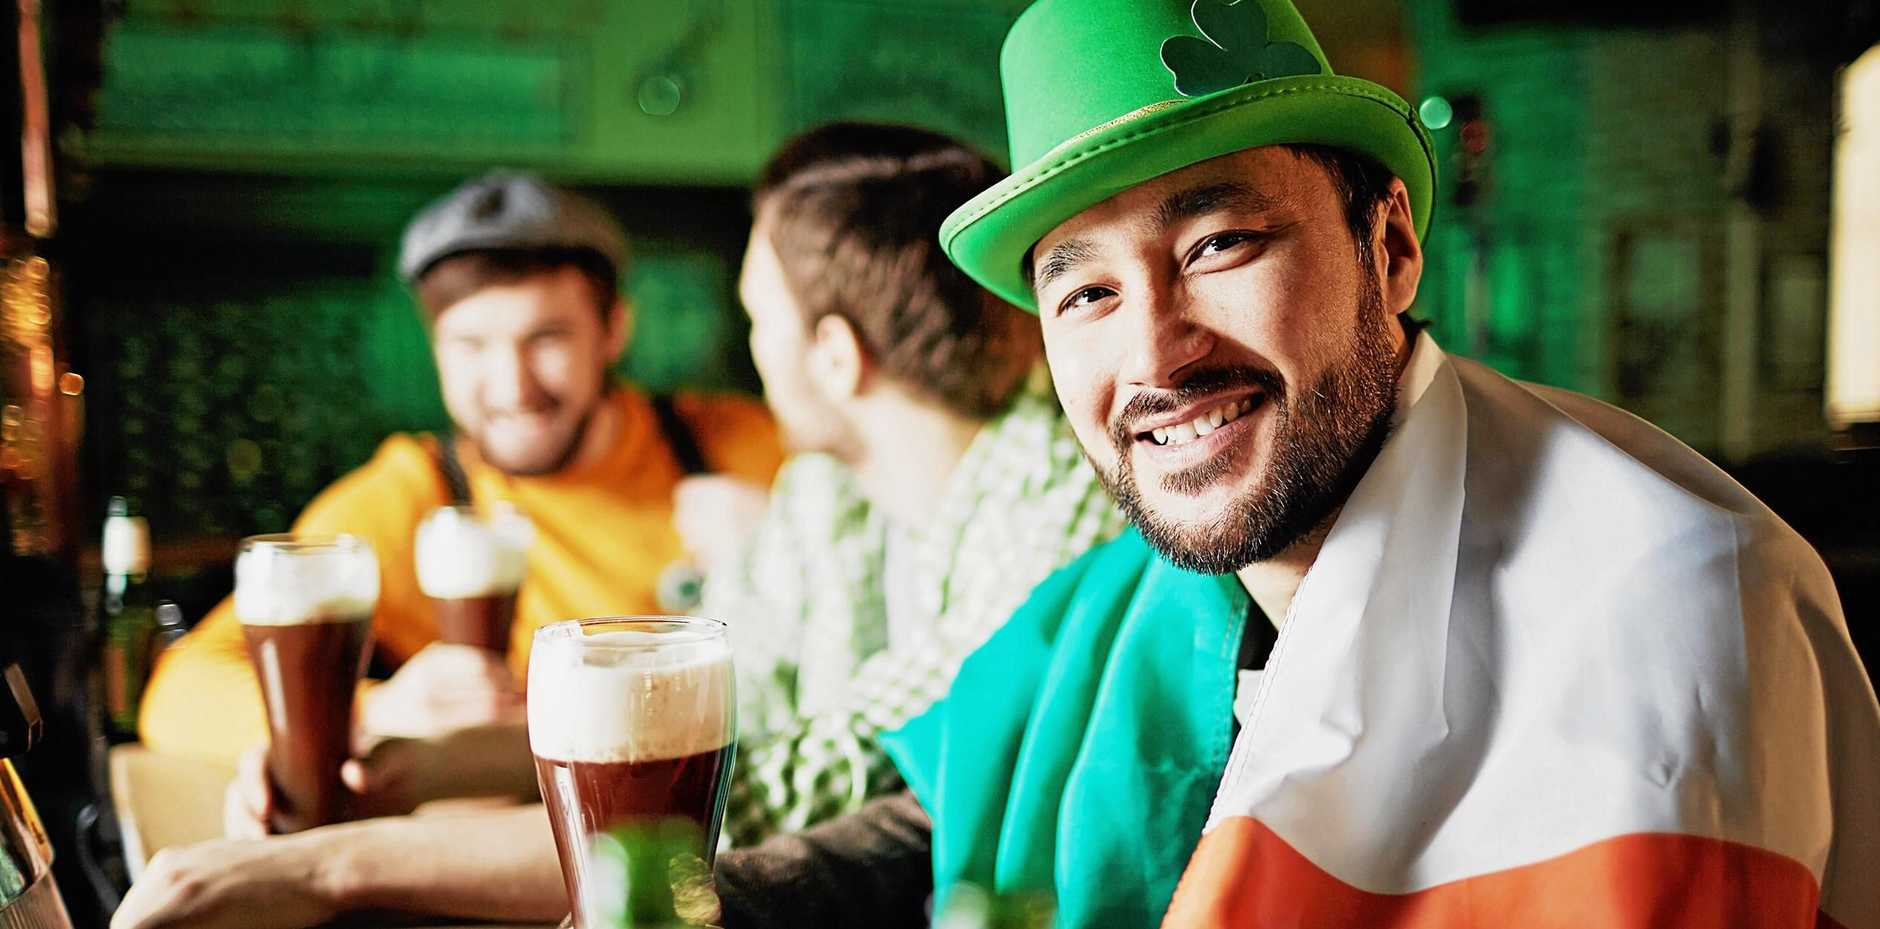 Saint Patrick's Day is celebrated today.